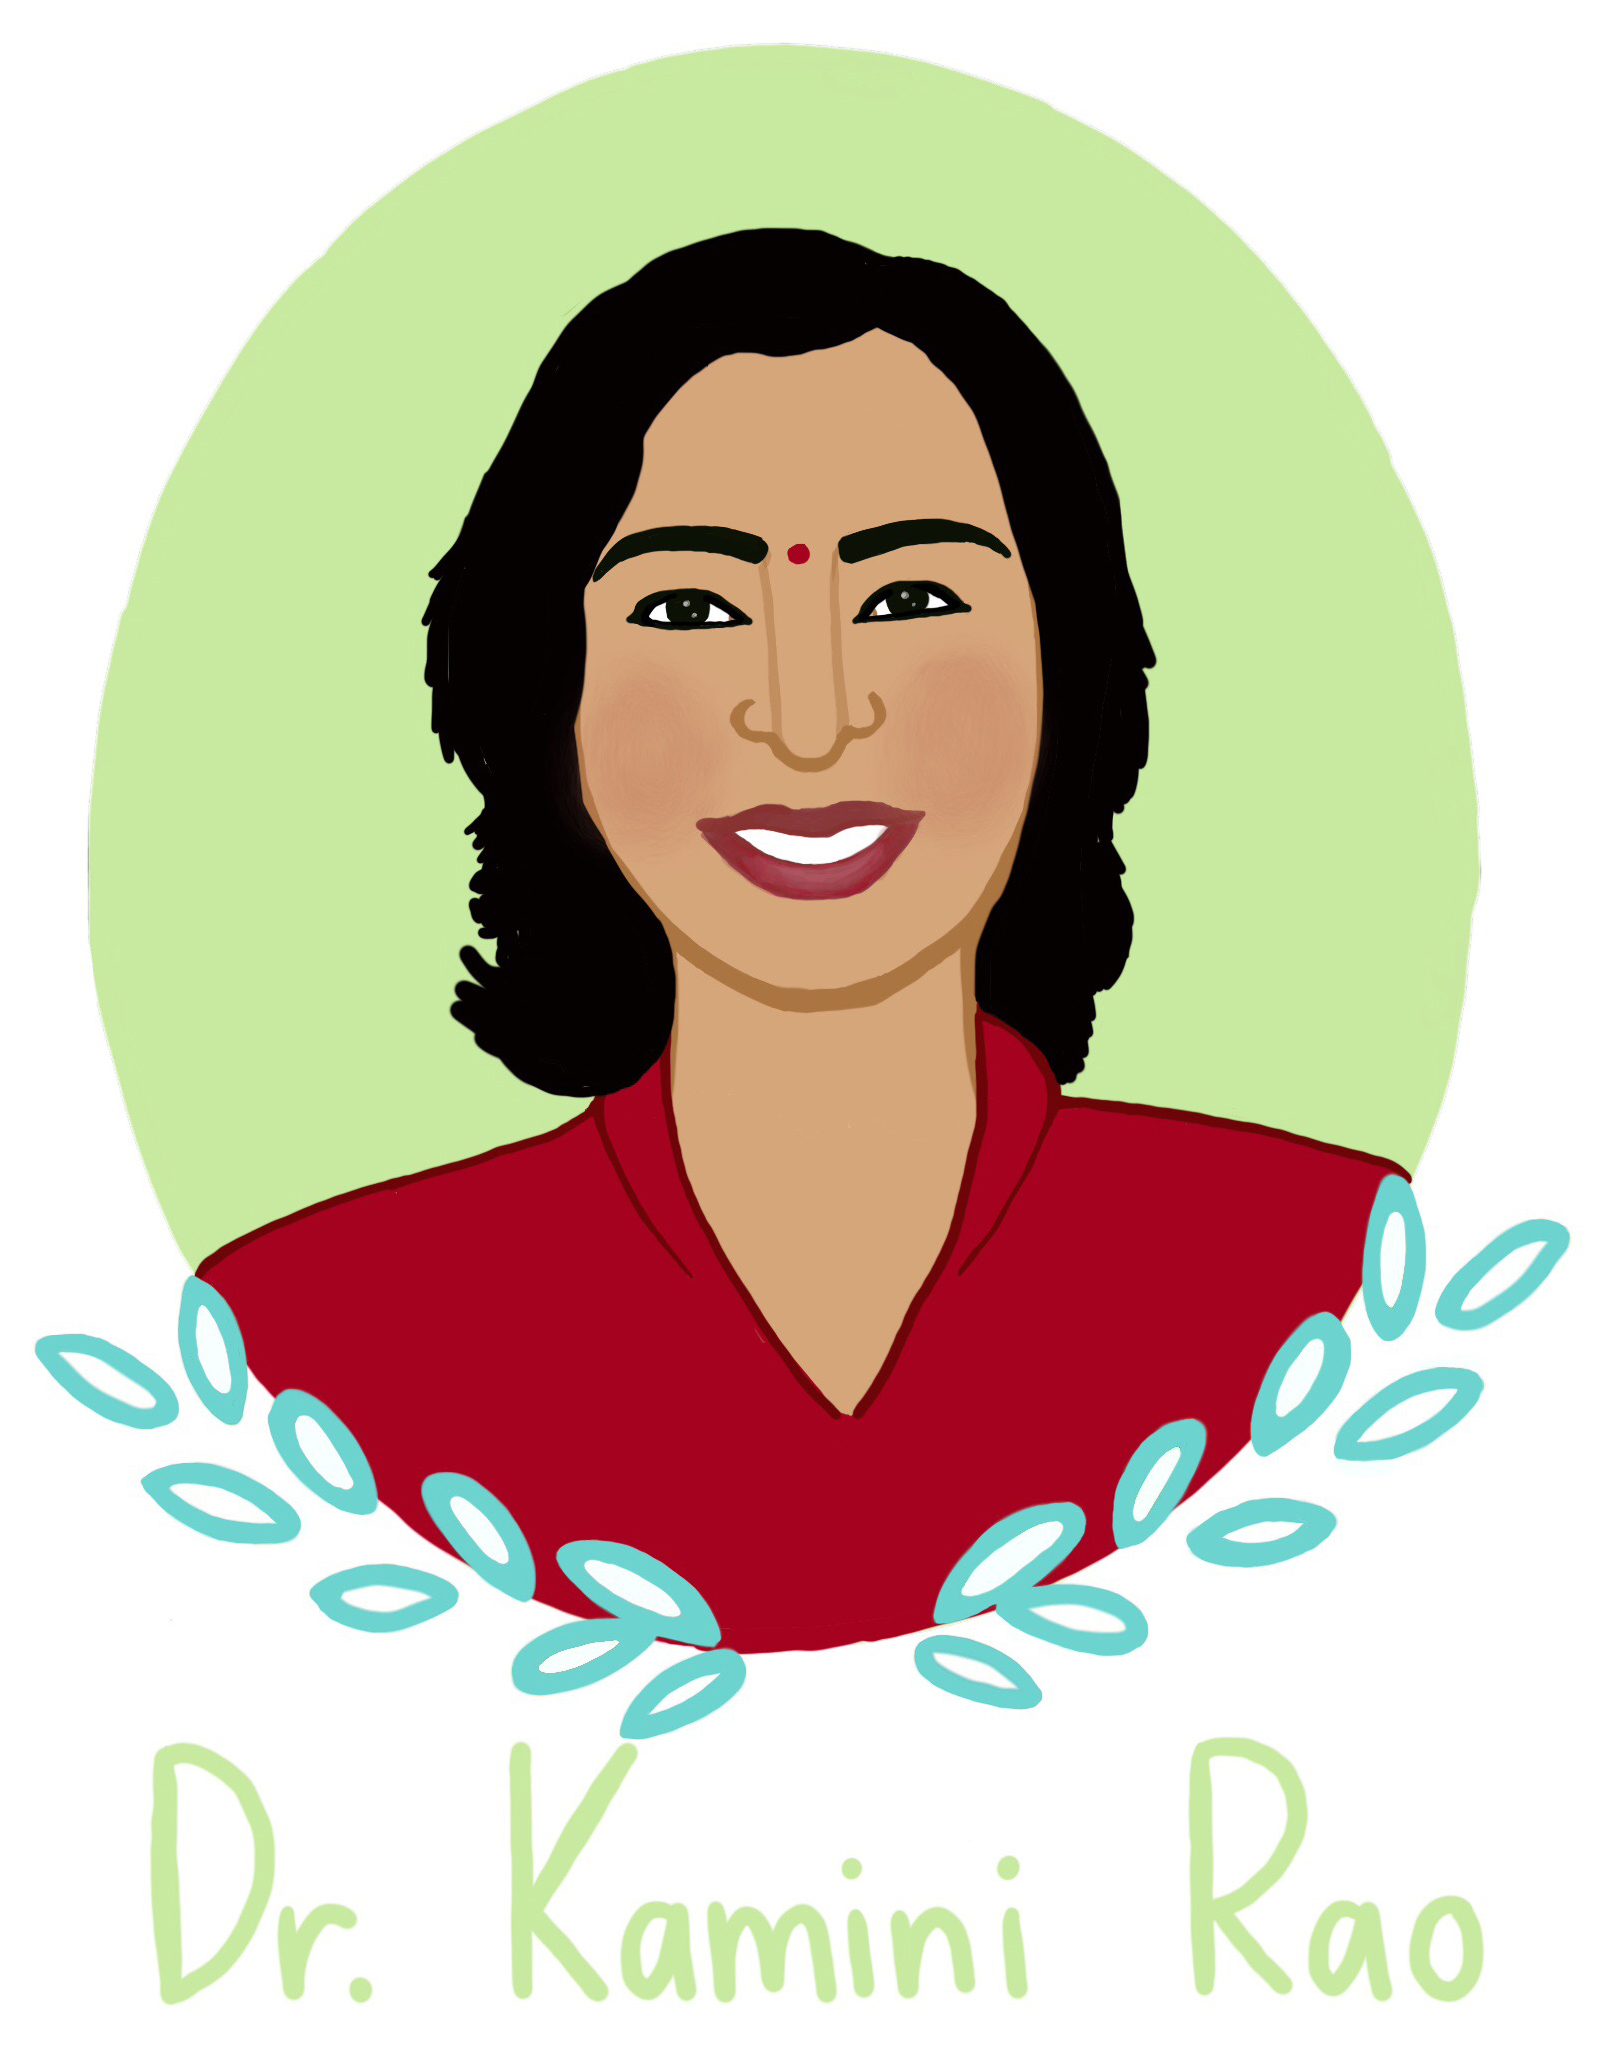 37. Dr. Kamini Rao - Dr. Kamini Rao is a doctor who is considered a pioneer in the field of assisted reproduction. For example, Dr. Rao is credited with the birth of the first SIFT baby in India. She has been awarded the Padma Sri, an Indian civilian award.